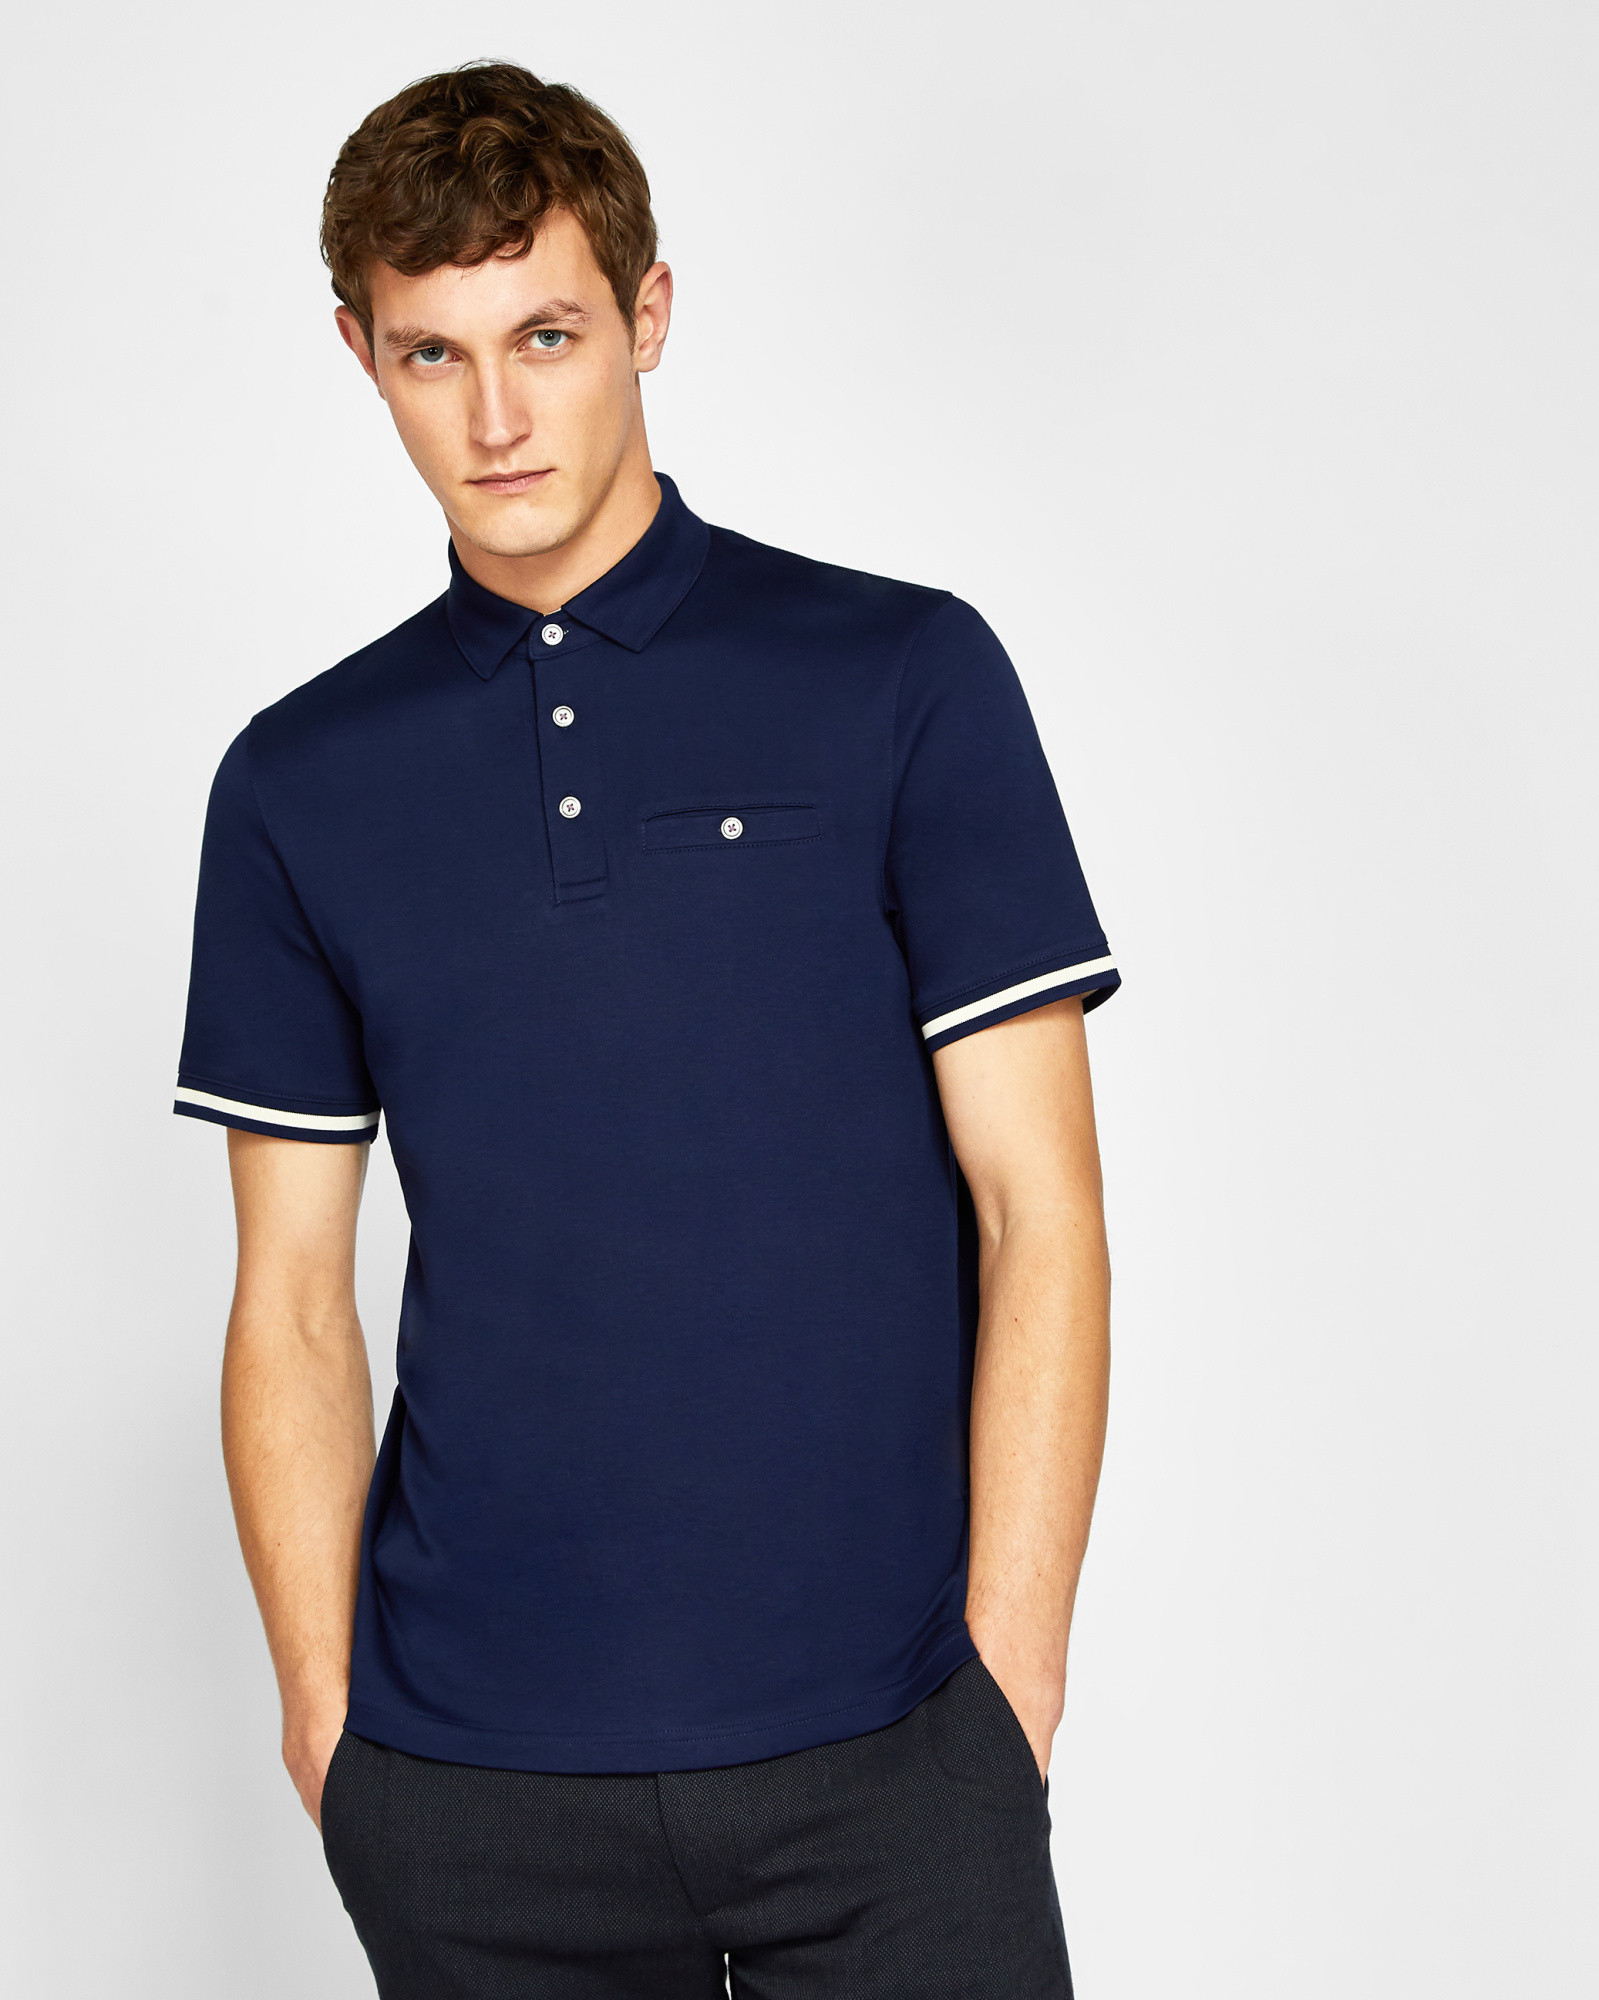 84aeeeced124a4 Ted Baker Stripe cuff polo shirt Navy | Products | Mens tops ...